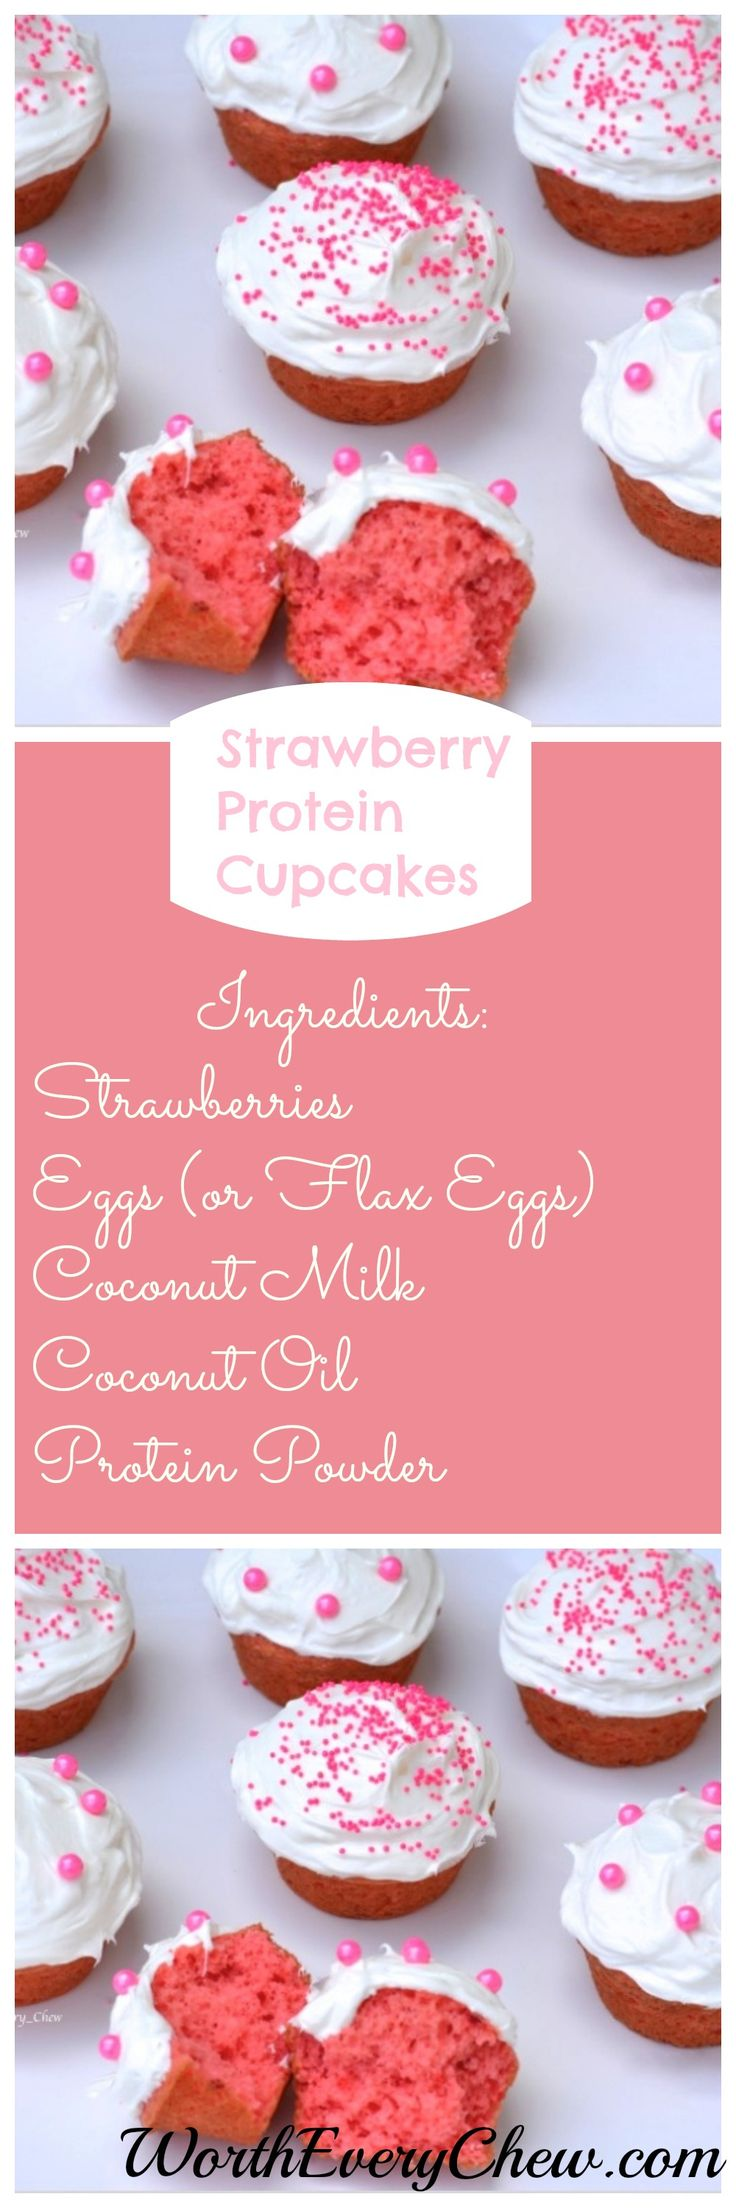 Strawberry Protein Cupcakes.....These are almost too pretty to eat!